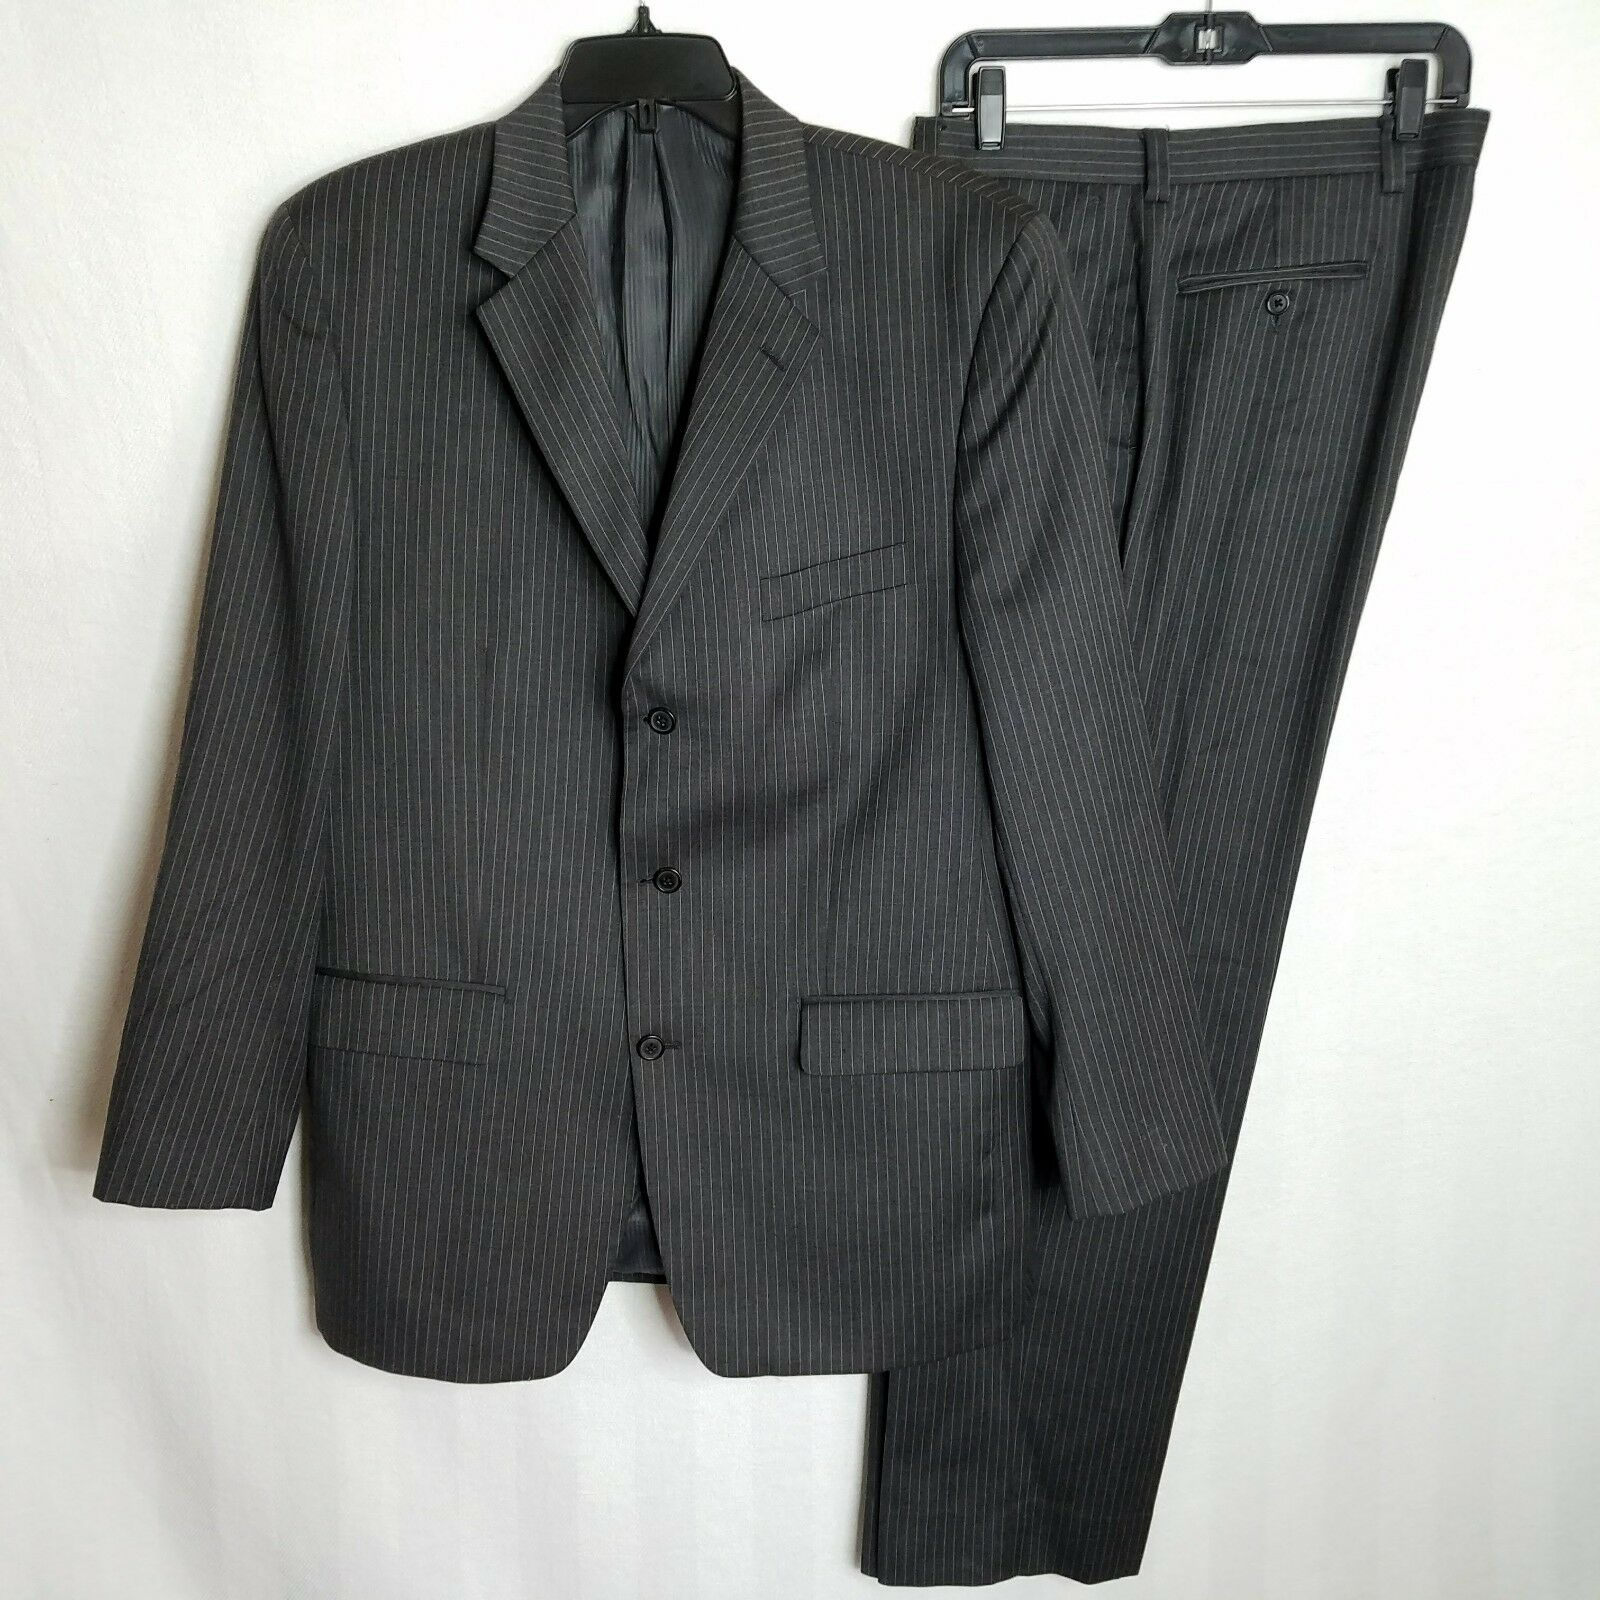 Apt 9 Mens Charcoal Grey Striped 2 Piece Suit Blazer & Pants Size 42L 36x32 CL01